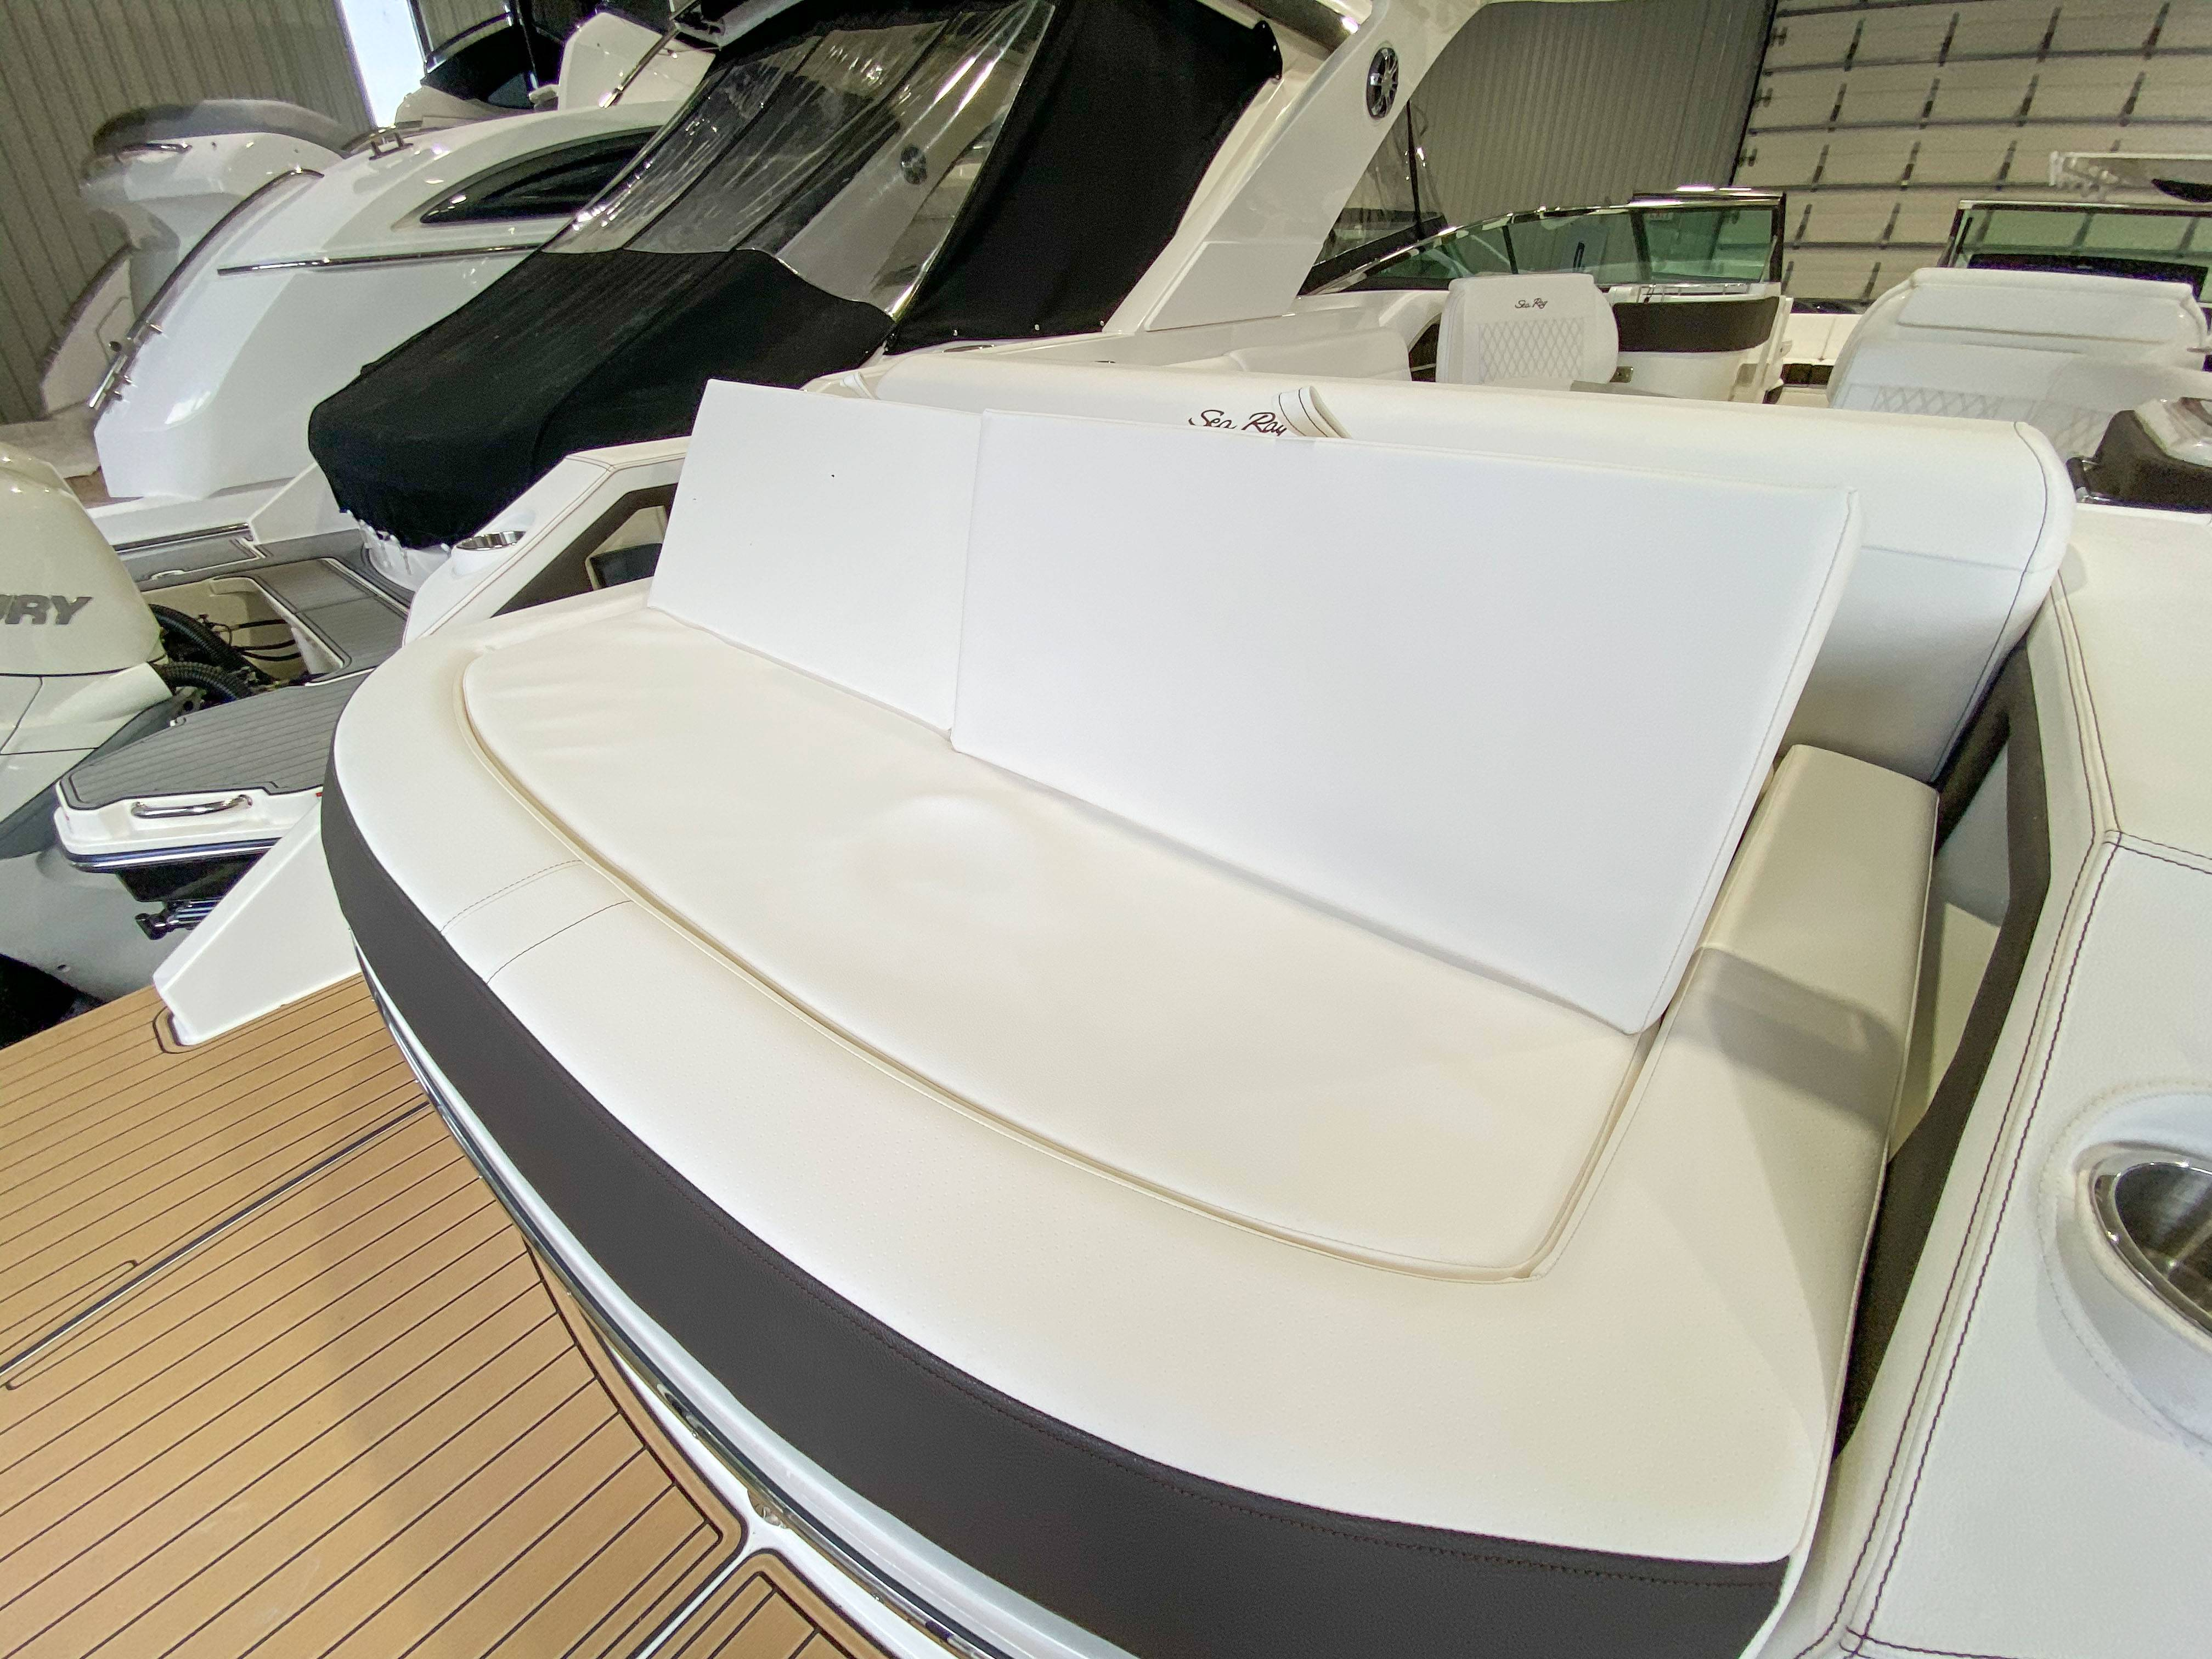 2021 Sea Ray boat for sale, model of the boat is SLX 310 & Image # 13 of 24